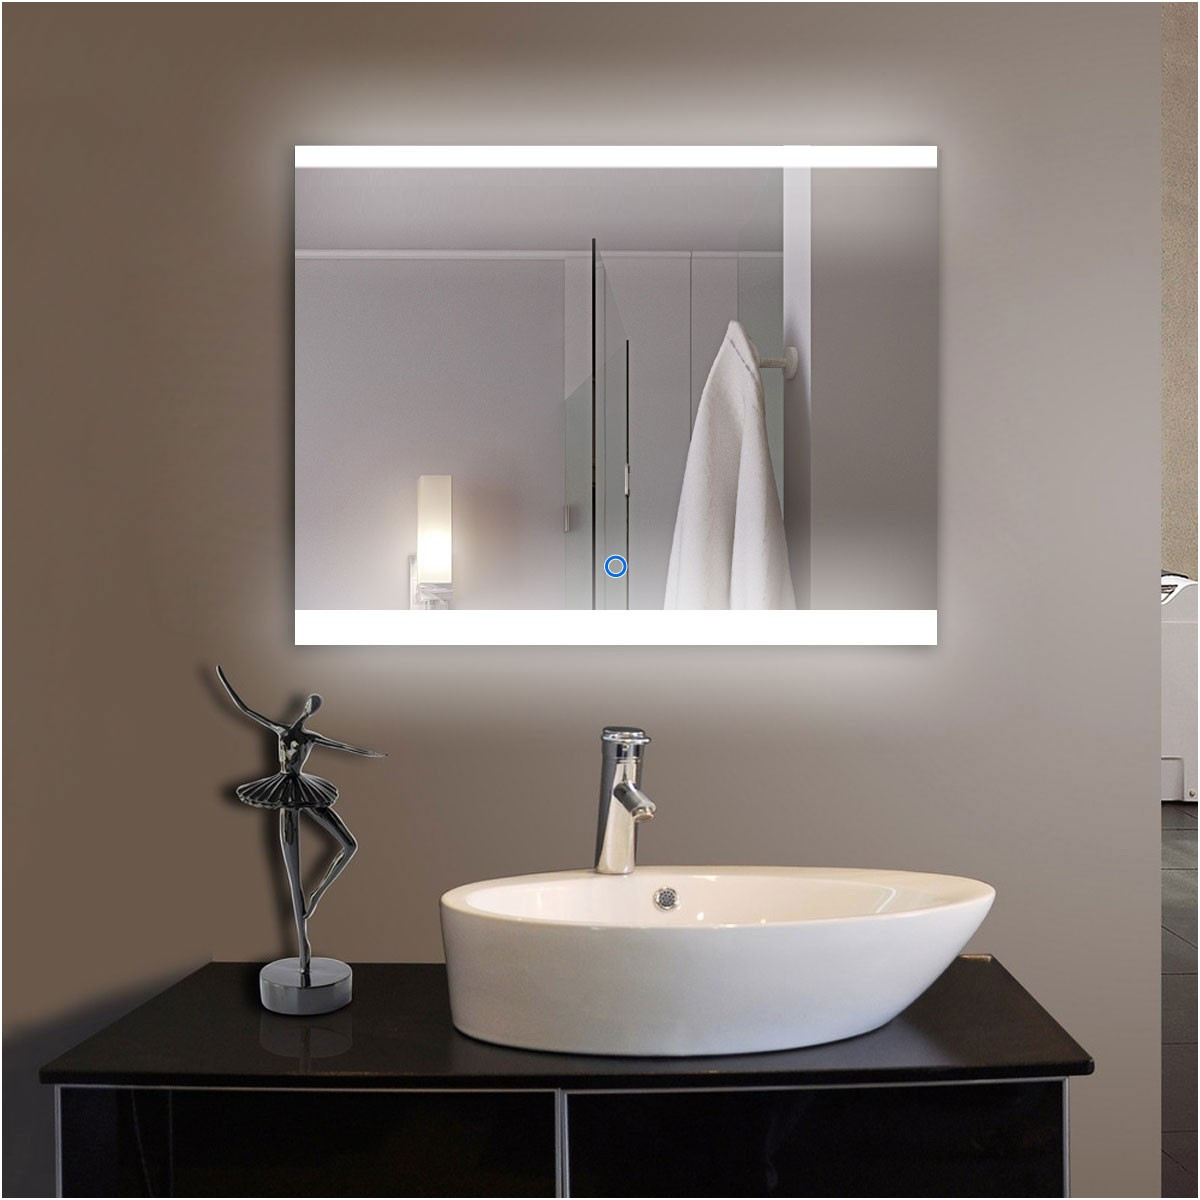 Square Bathroom Mirror On Stand Fresh 36 X 28 In Horizontal Led Bathroom Silvered Mirror with touch button